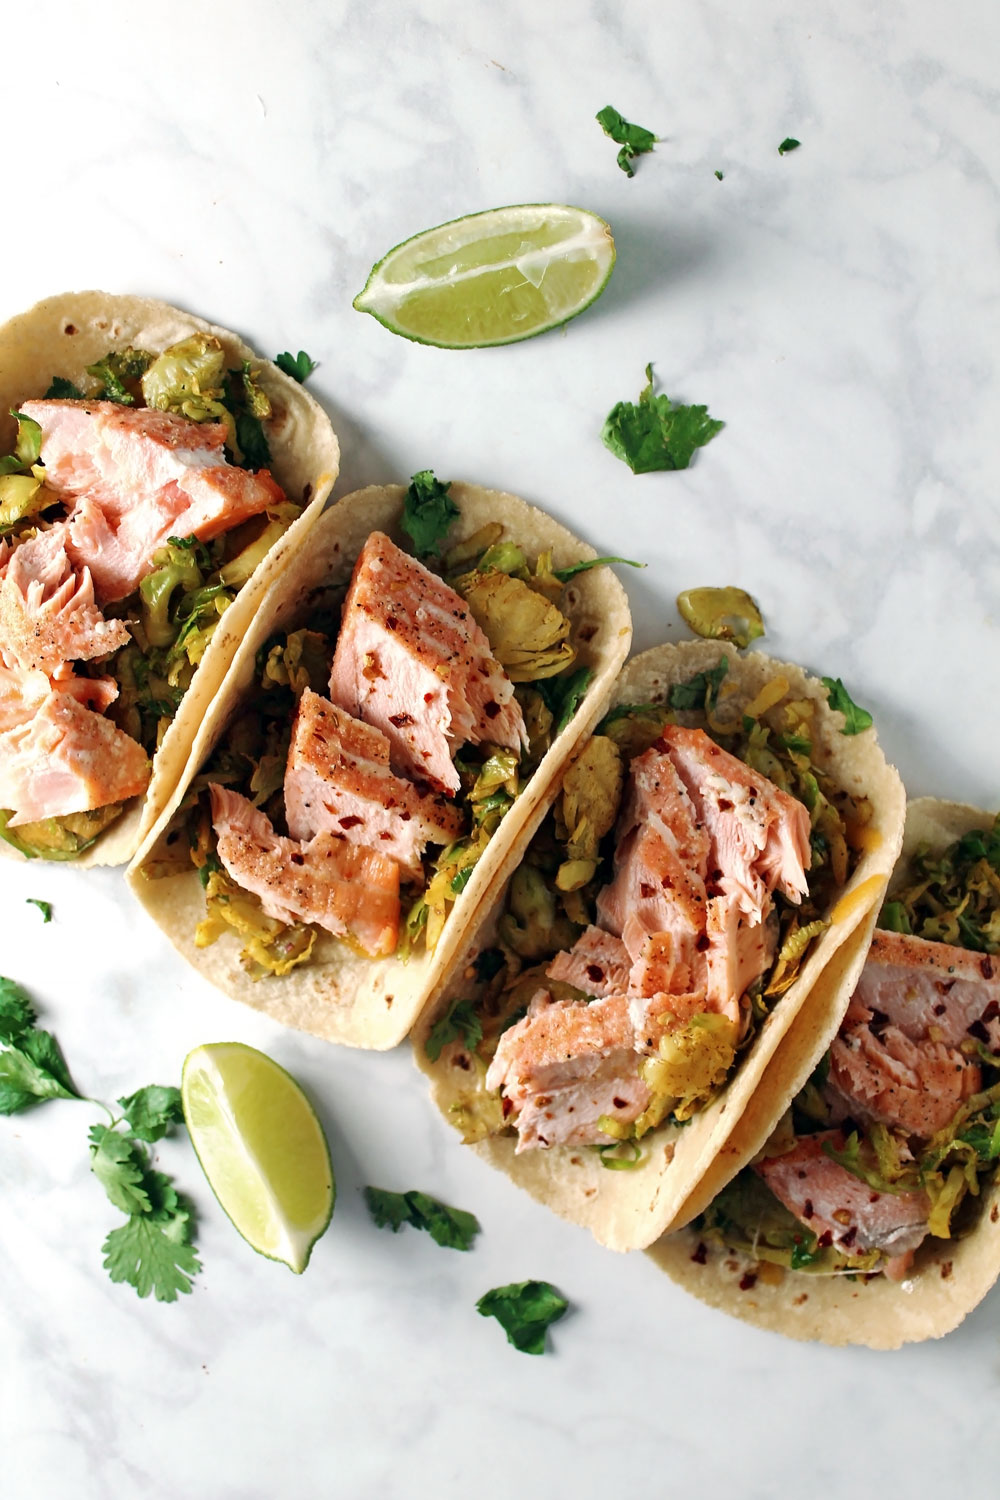 Salmon and Shredded Brussels Sprout Tacos